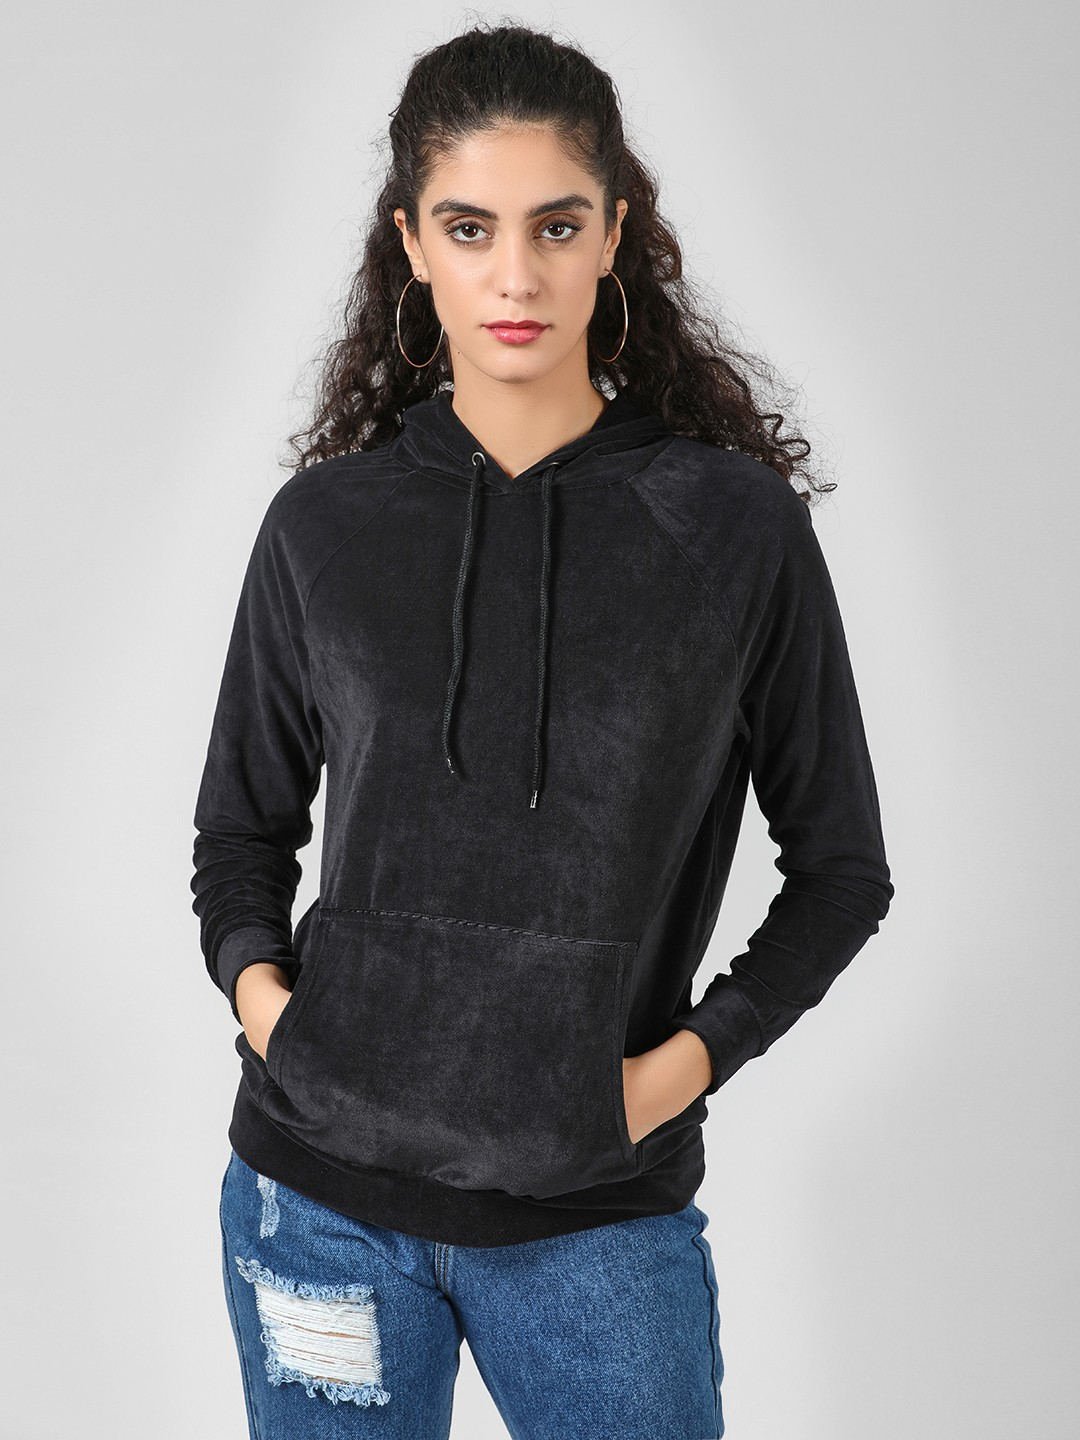 Brave Soul Black Velvet Hooded Sweatshirt 1